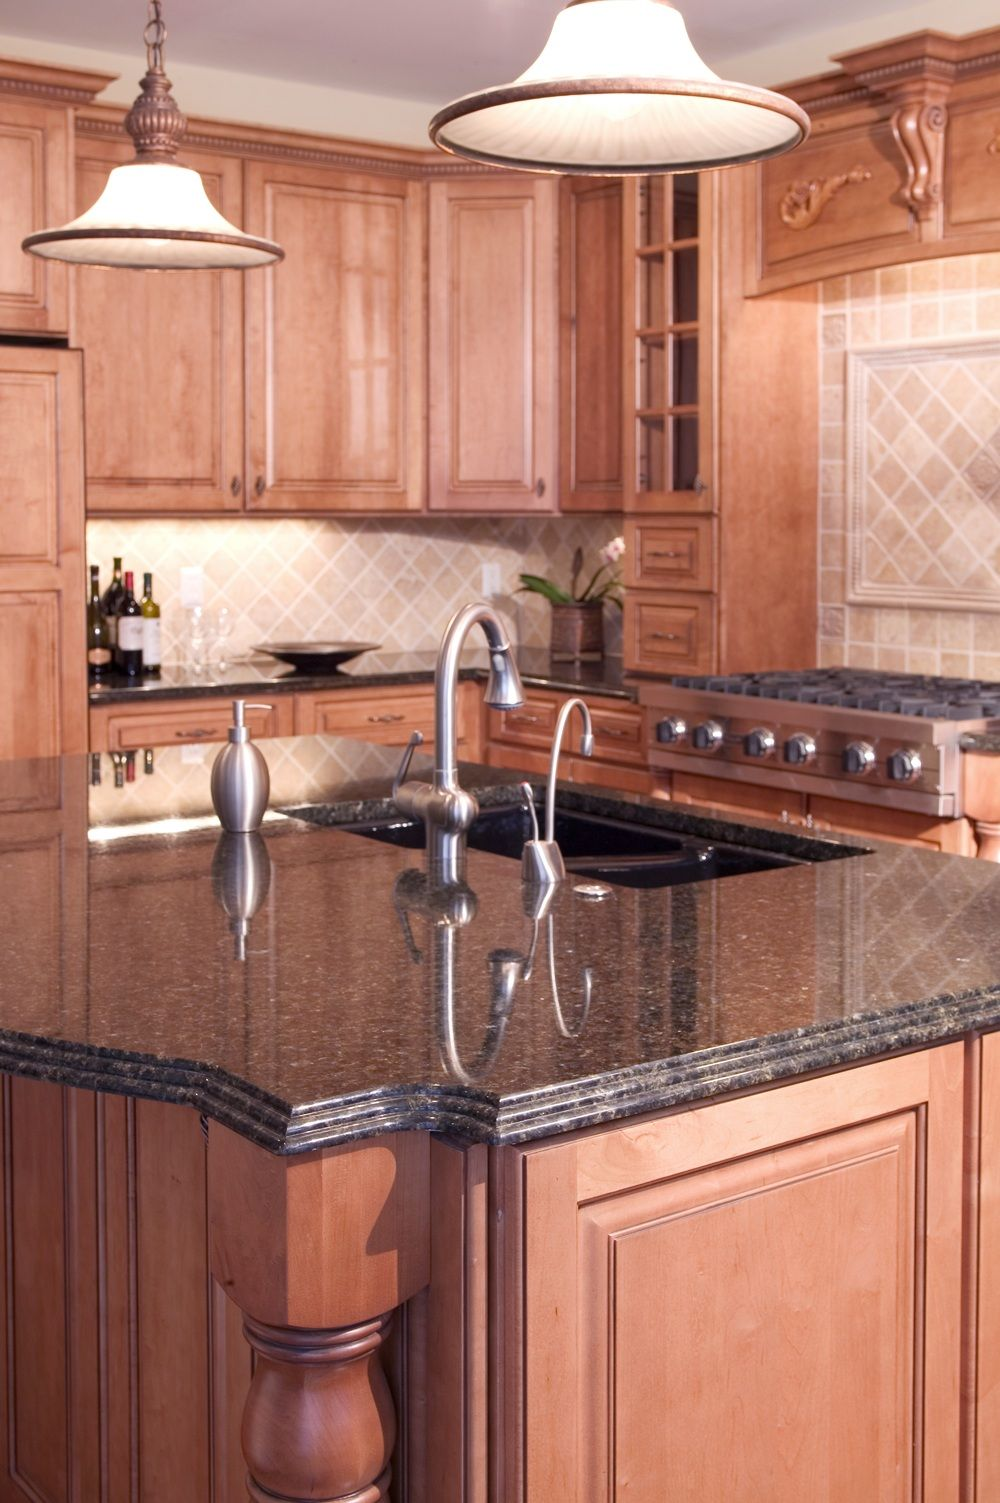 kitchen cabinet design kitchen redo kitchen designs kitchen cabinets